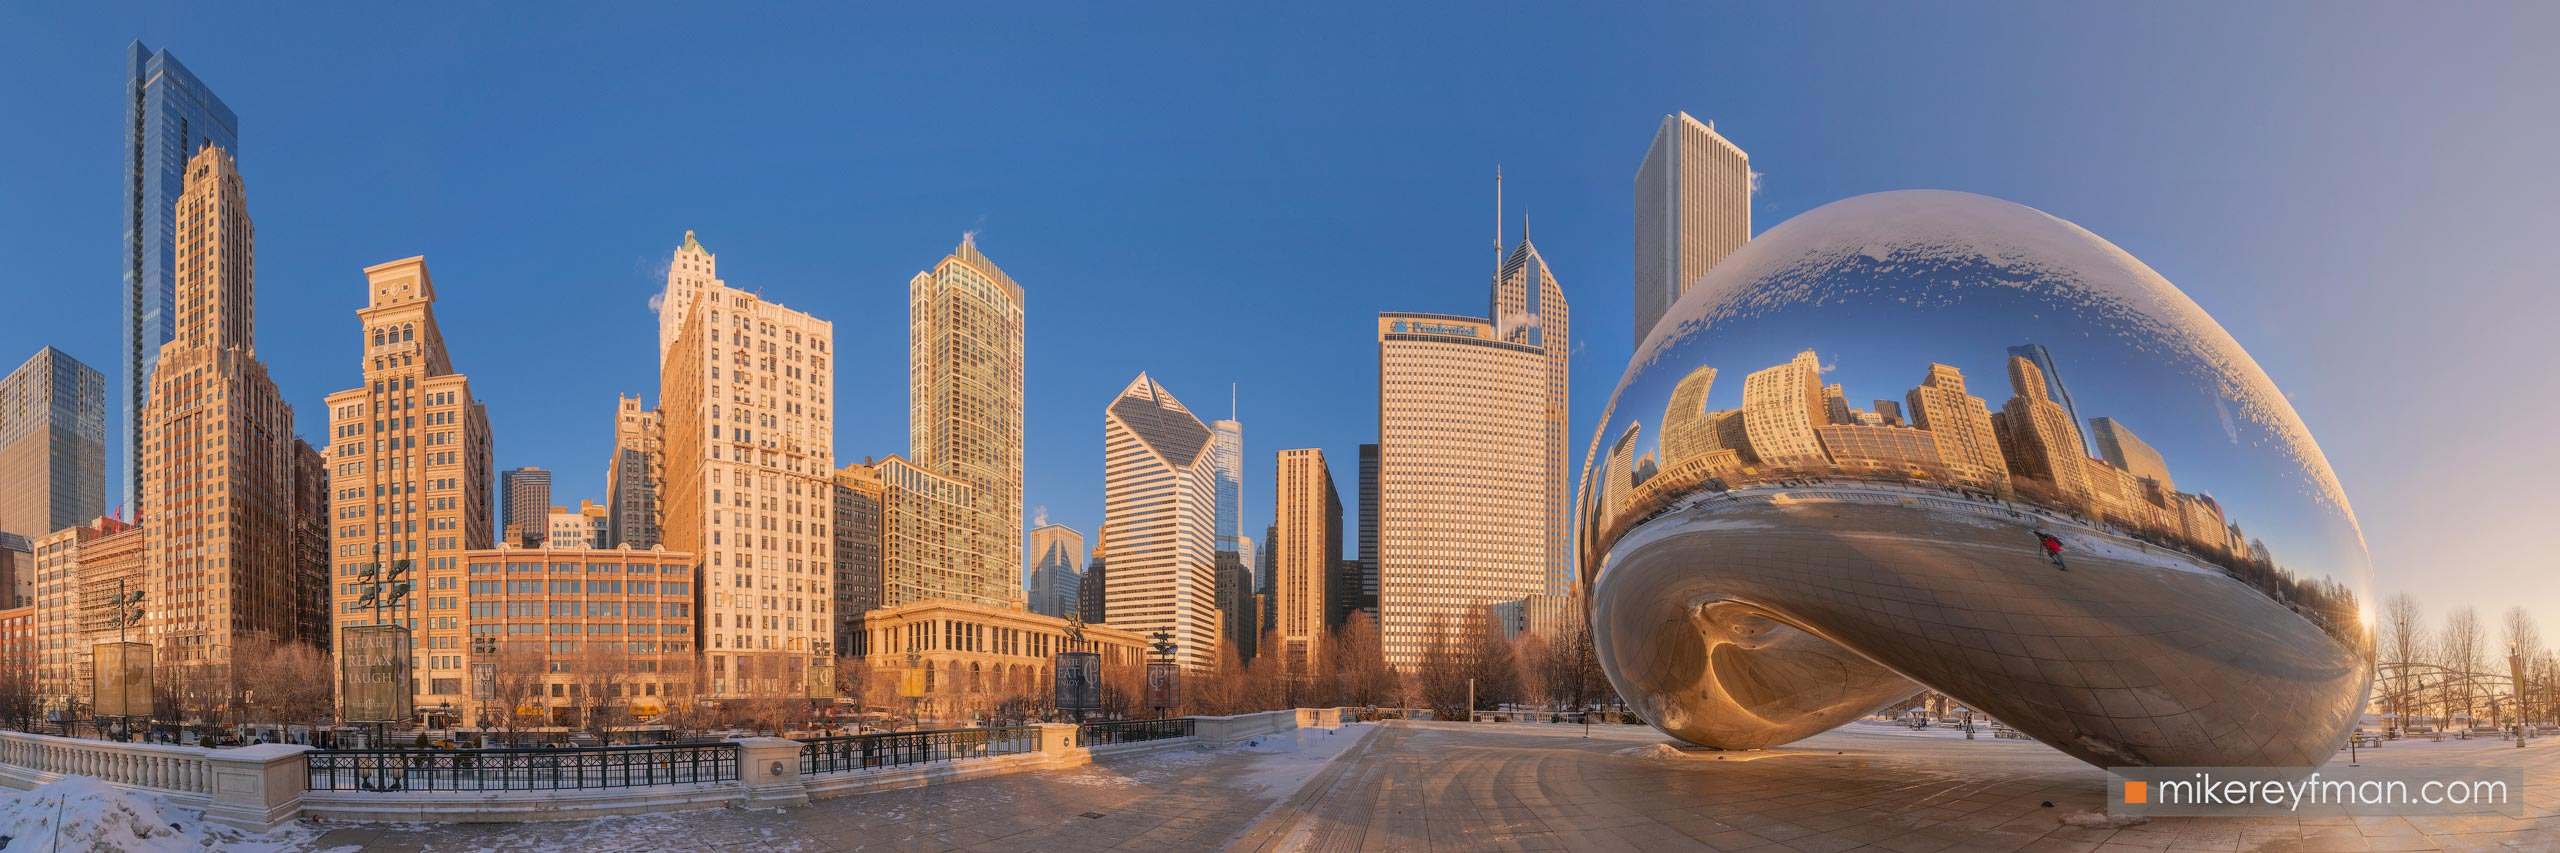 "Cloud Gate - ""The Bean"". Millennium Park, Chicago, Illinois, USA 104-CH1-D8C8366_Pano_1x3 - Chicago, USA: The"